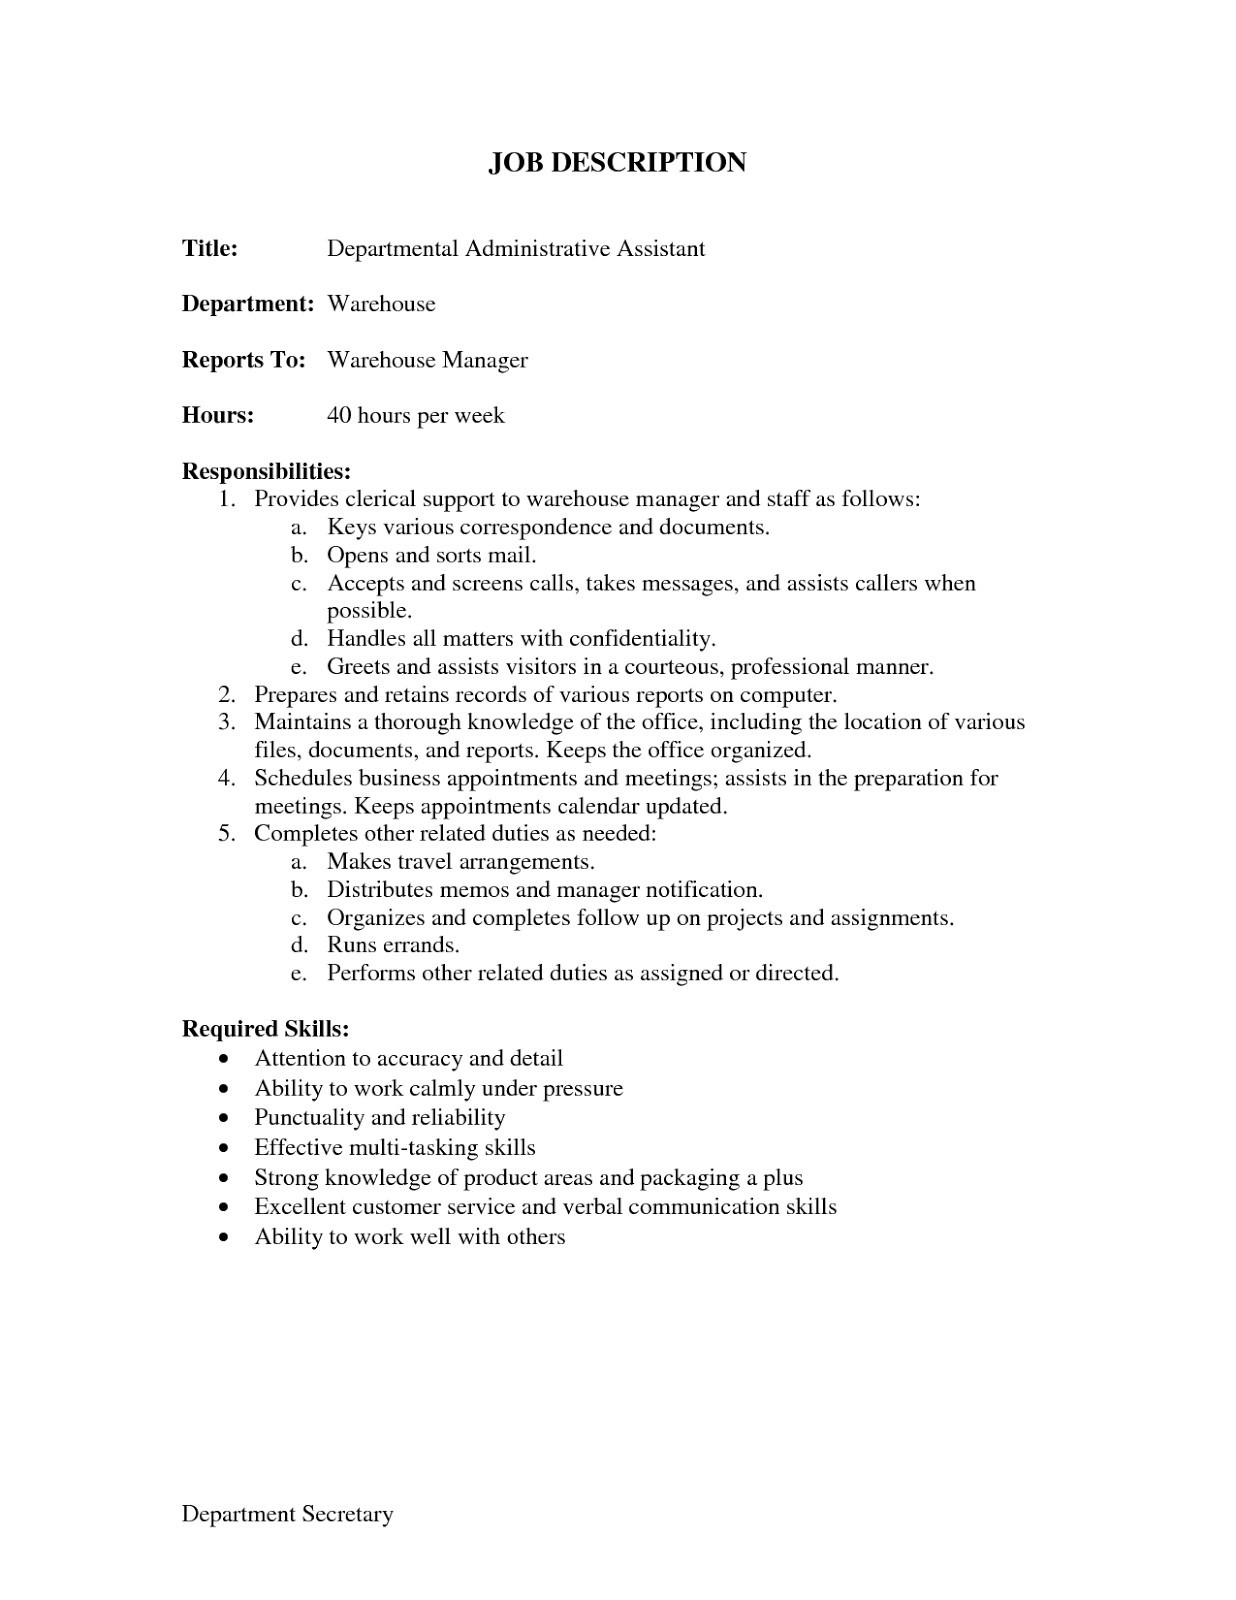 Waitress Job Description for Resume - Waitress Job Description for Resume Beautiful Resume Job